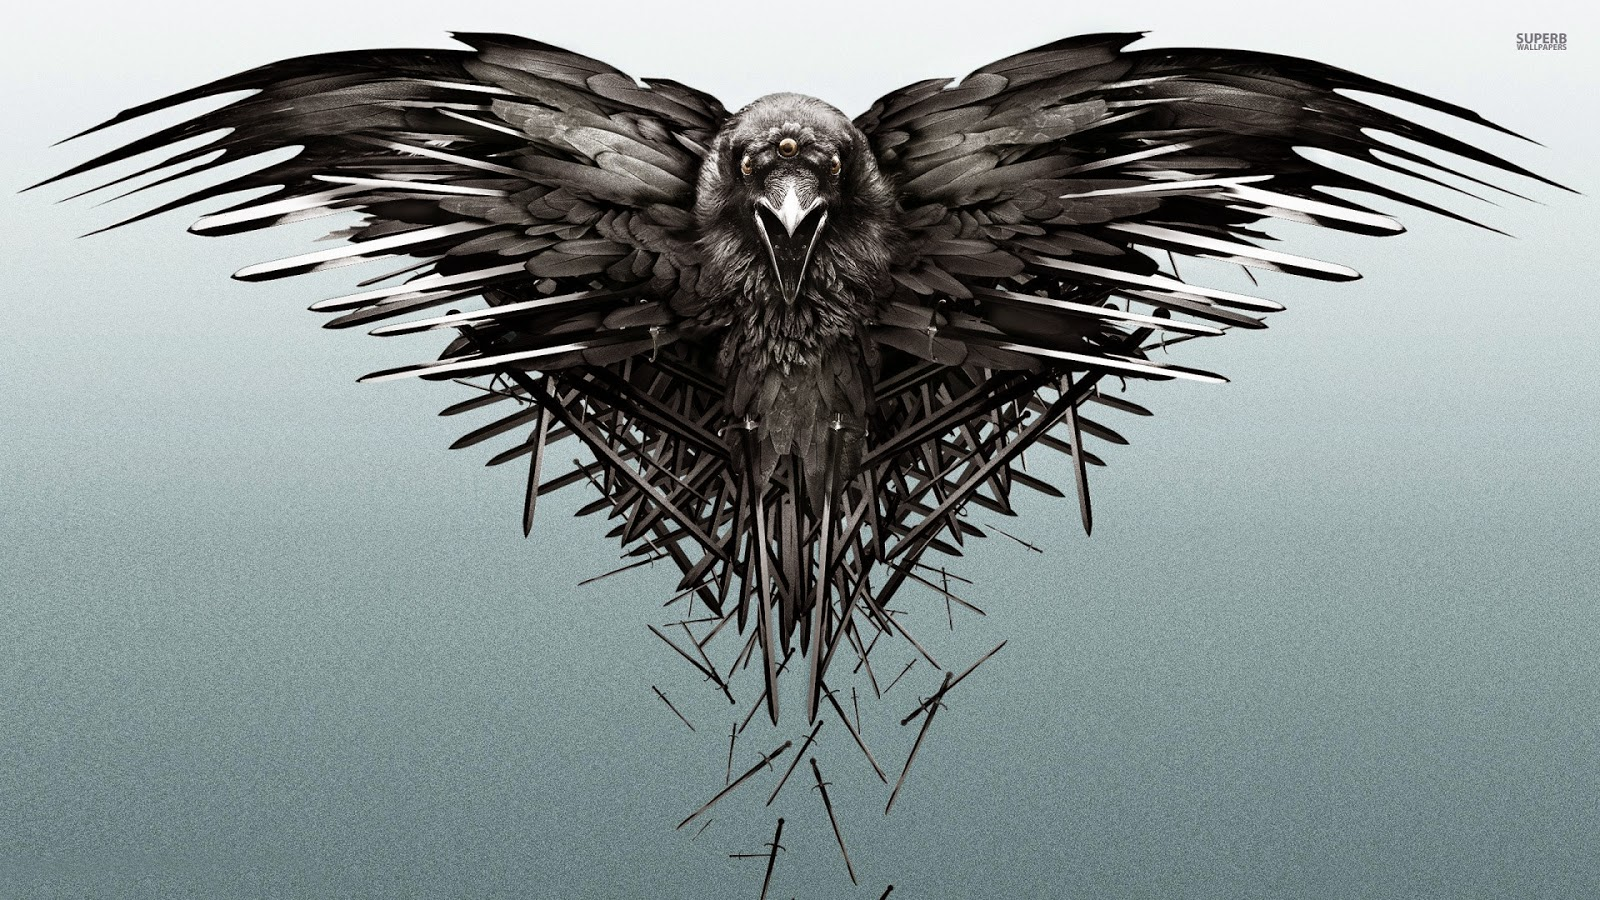 Free download Game of Thrones Season 4 Raven Poster Wallpaper Download Best [1600x900] for your Desktop, Mobile & Tablet | Explore 46+ Game of Thrones Official Wallpaper | Hbo Game Of Thrones Wallpapers,